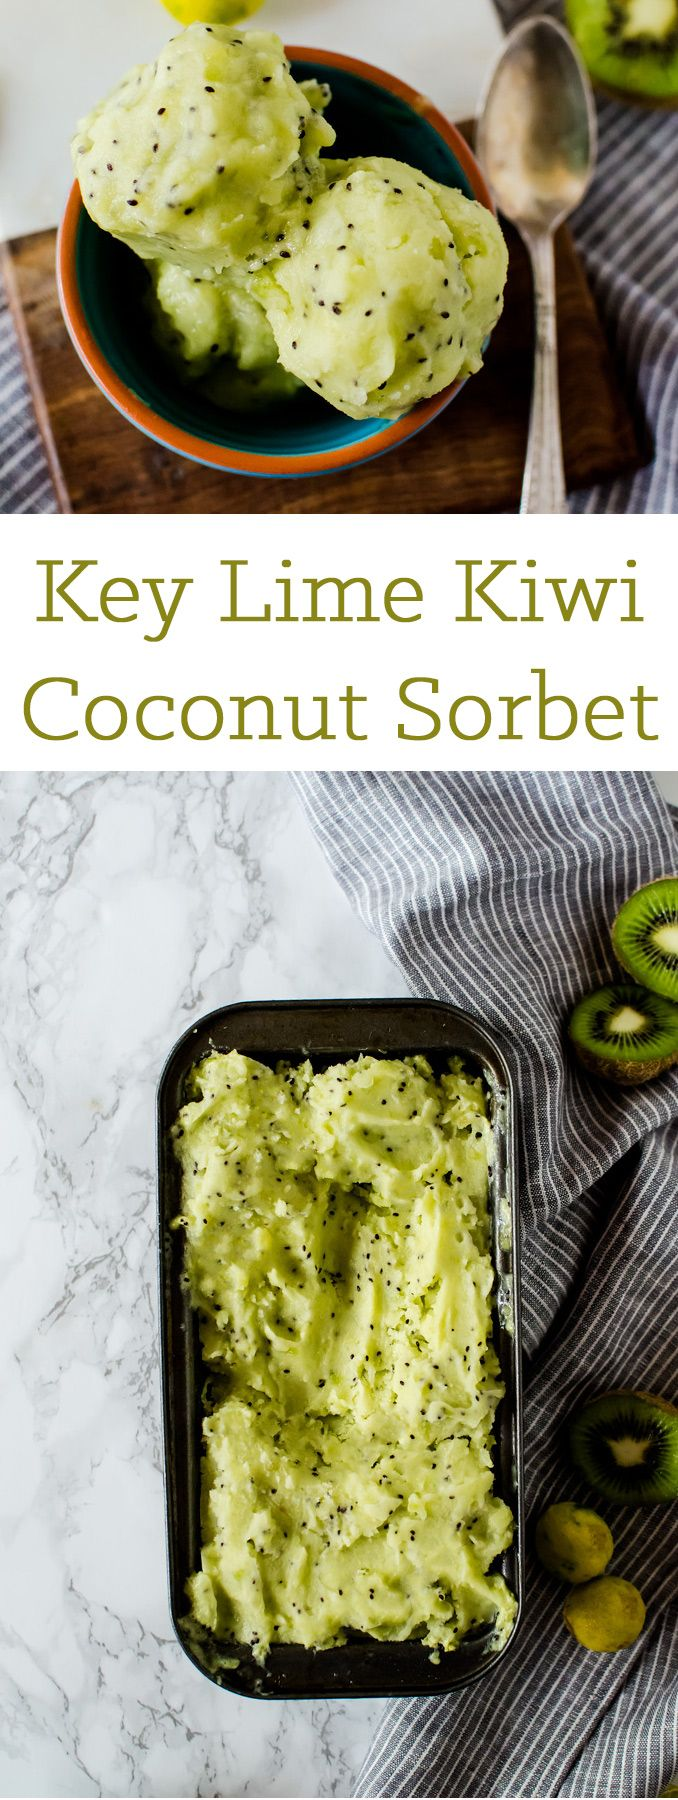 This tropical kiwi sorbet is infused with key lime and coconut for an incredible summer dessert you will not be able to put down.